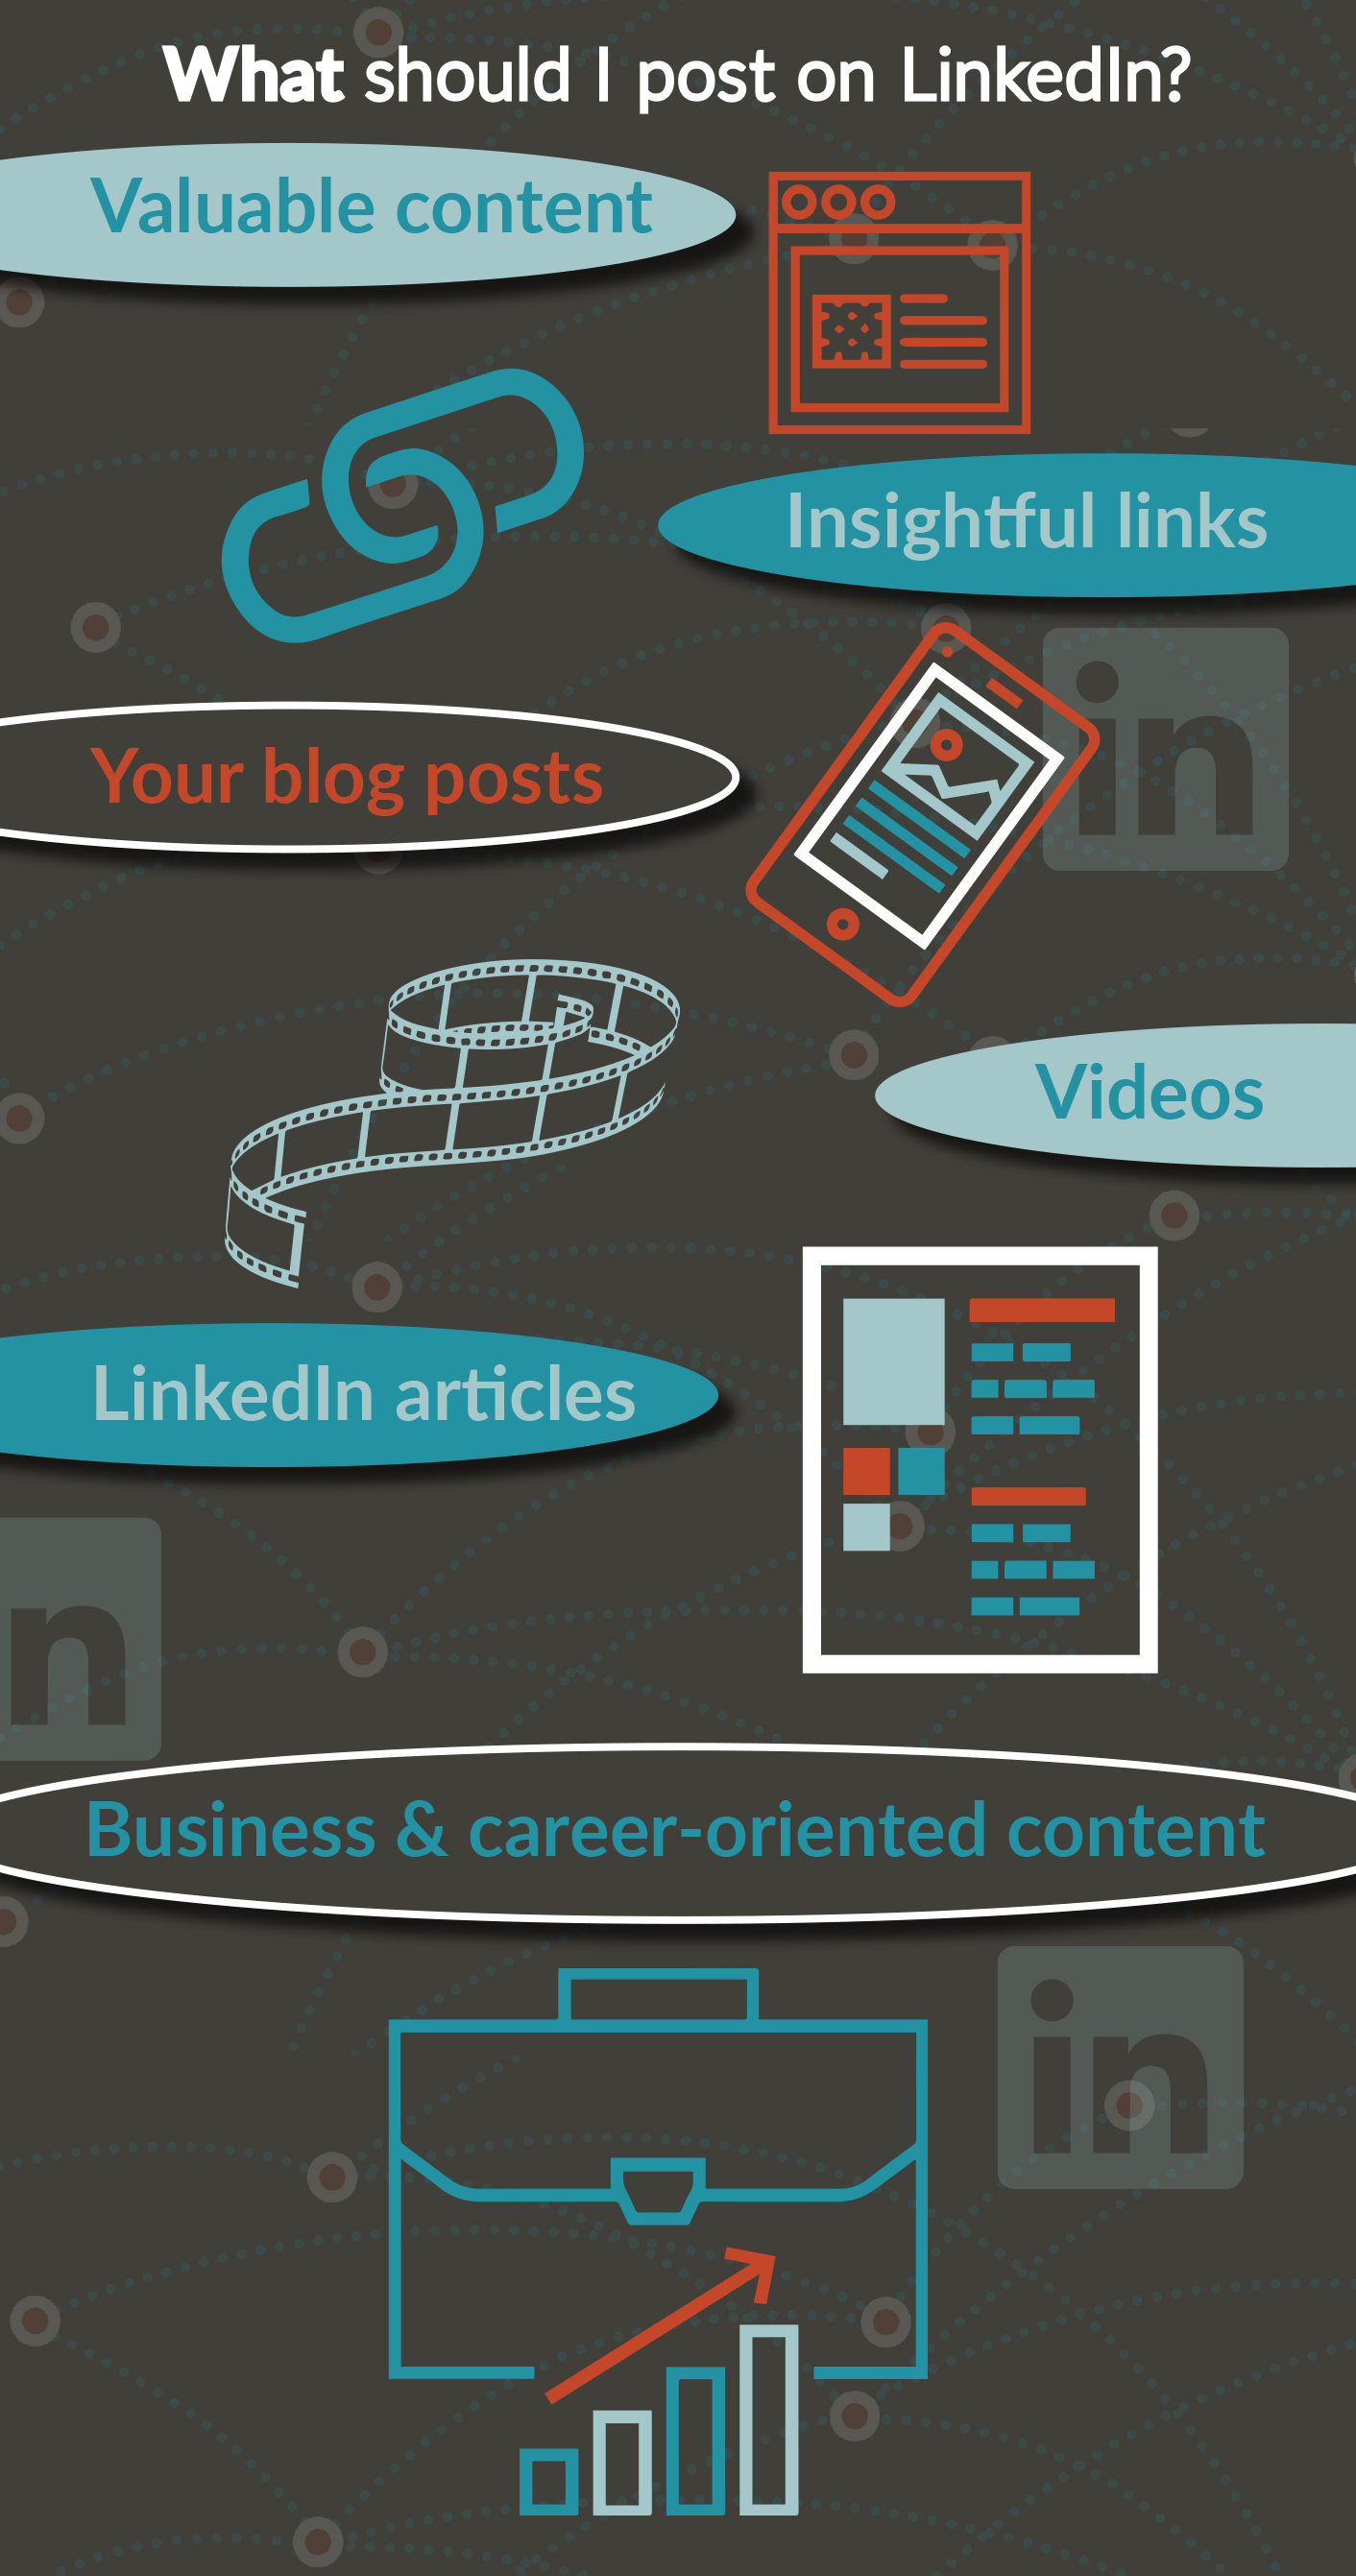 Jones-complete-social-media-guide-linkedin-whattopost